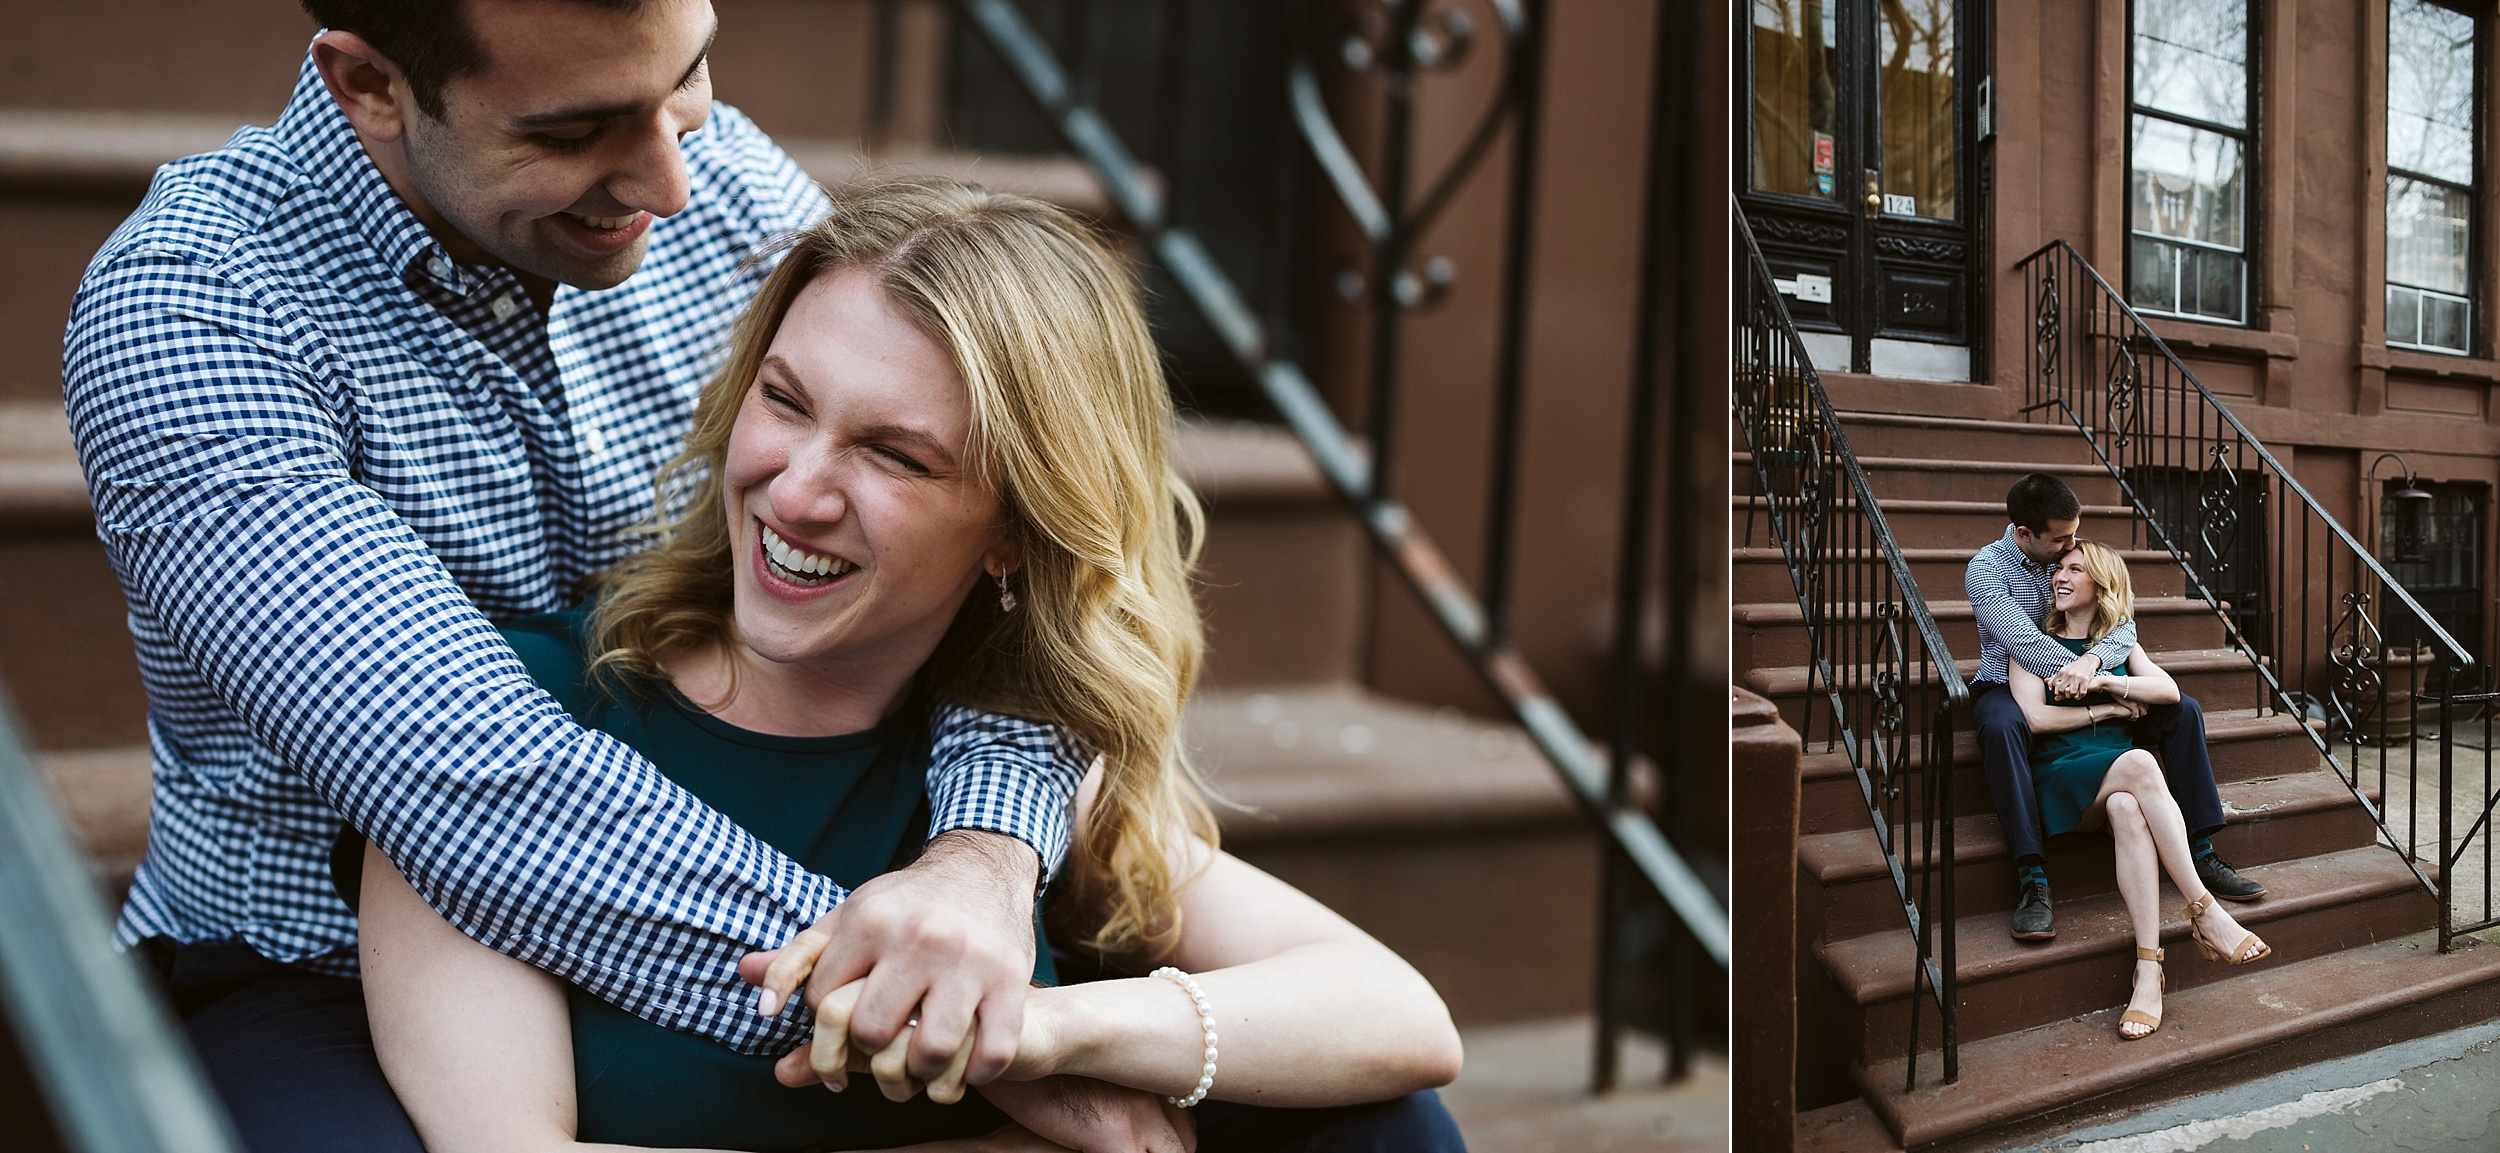 Allison Sullivan - Park Slope + Prospect Park Brooklyn Engagement Session 0004.JPG